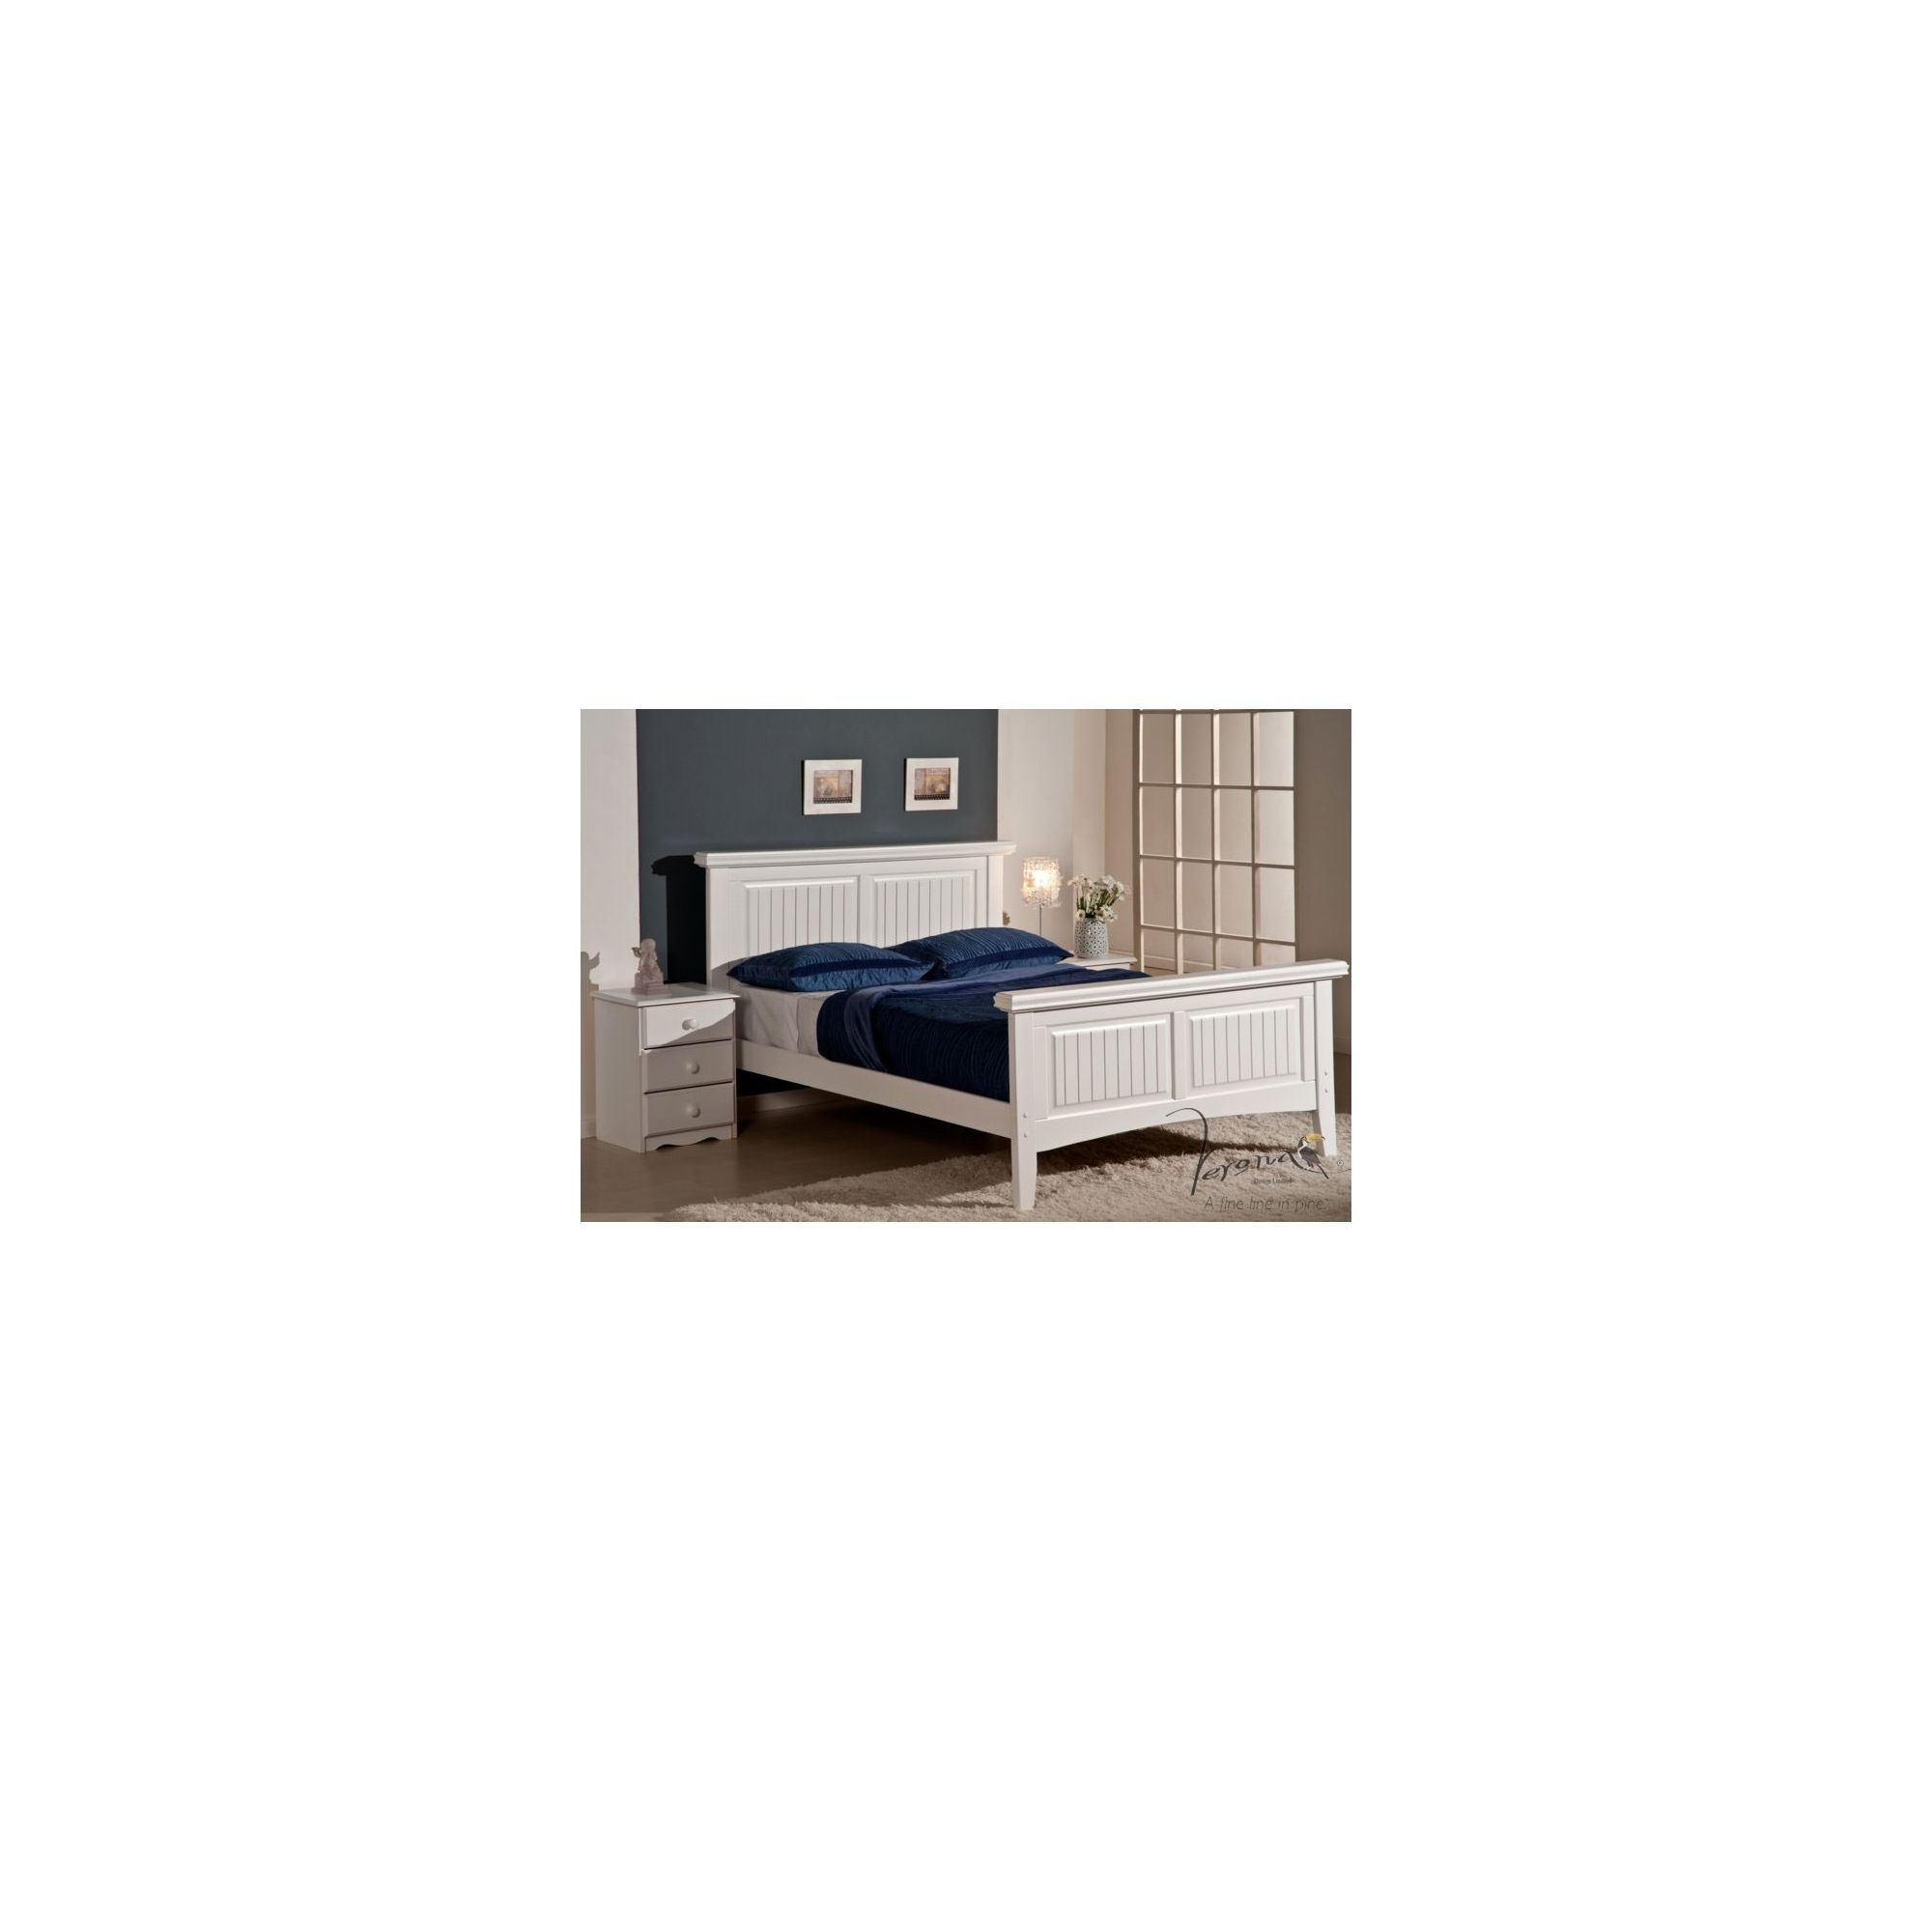 Verona Lazio Bedstead - Double at Tesco Direct